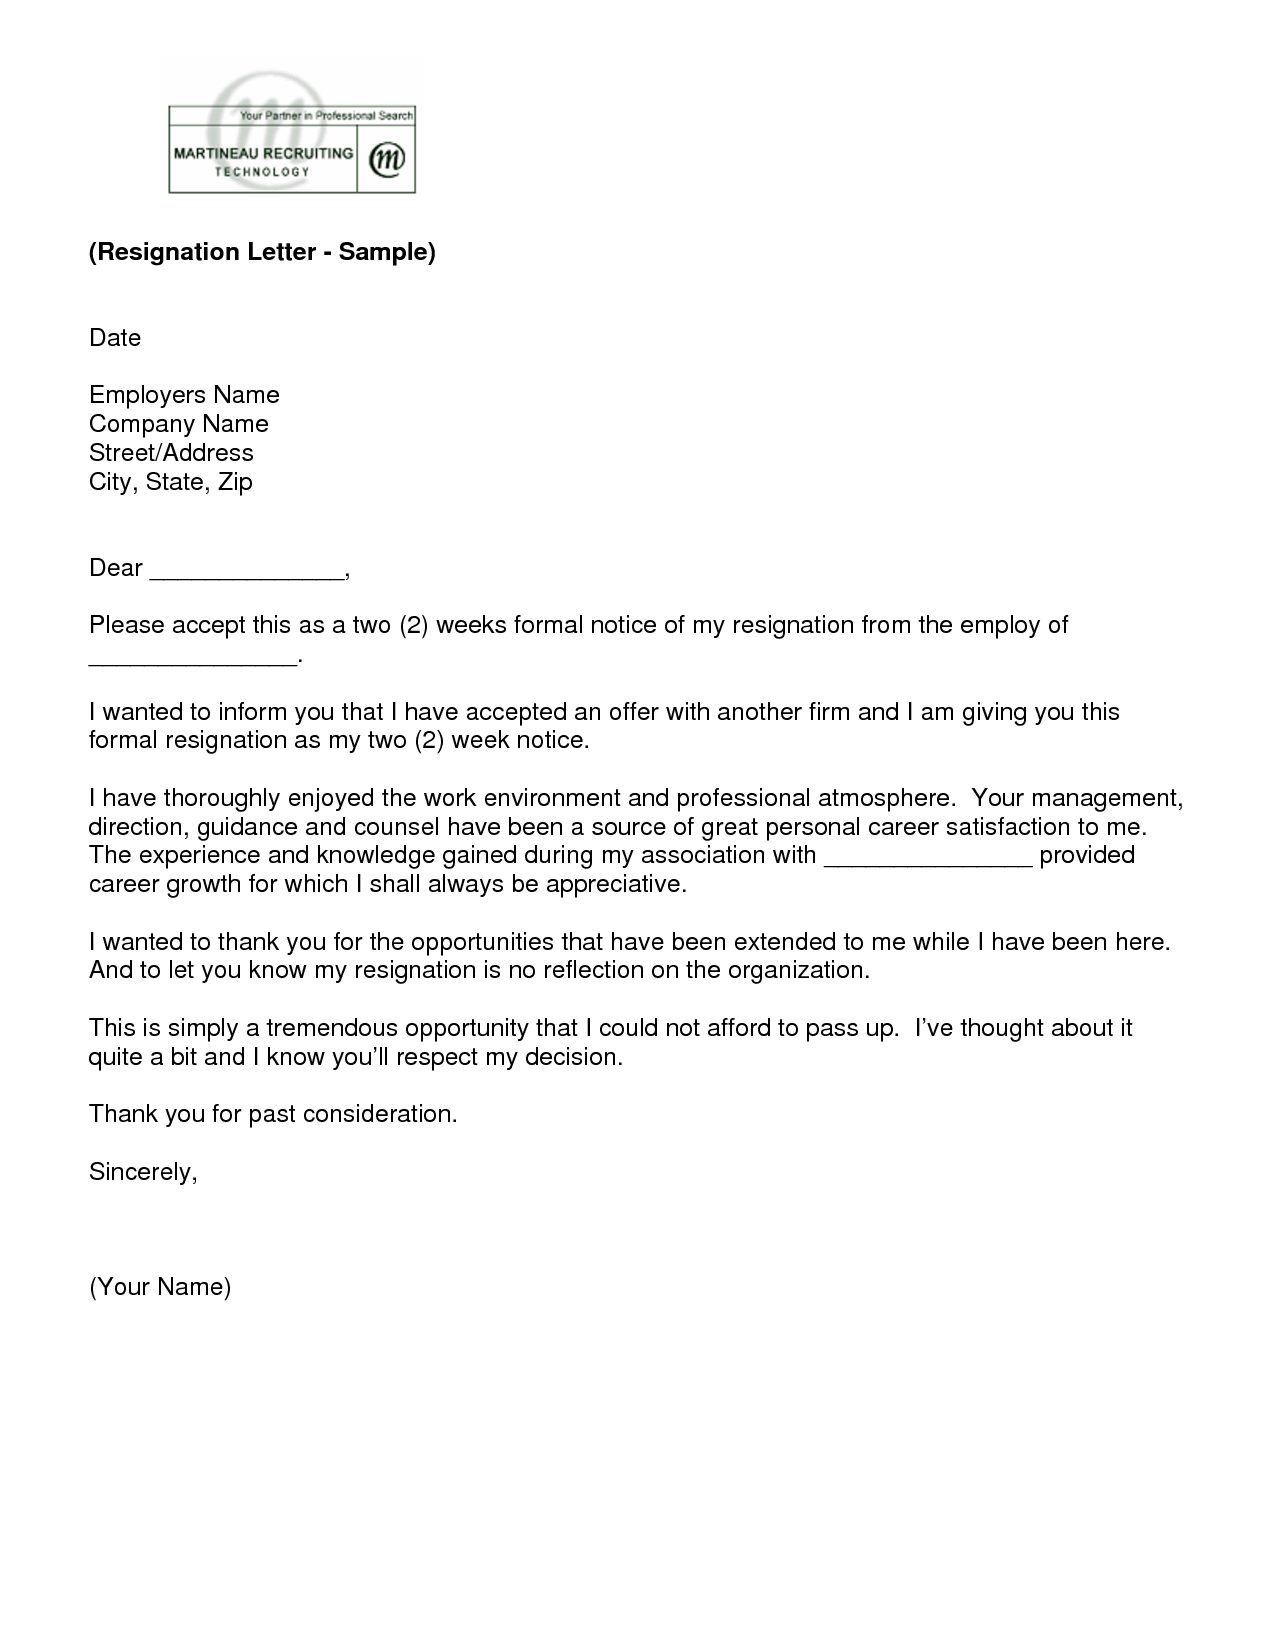 Letter Of Resignation 2 Weeks Notice Template | Employee Inside Two Week Notice Template Word